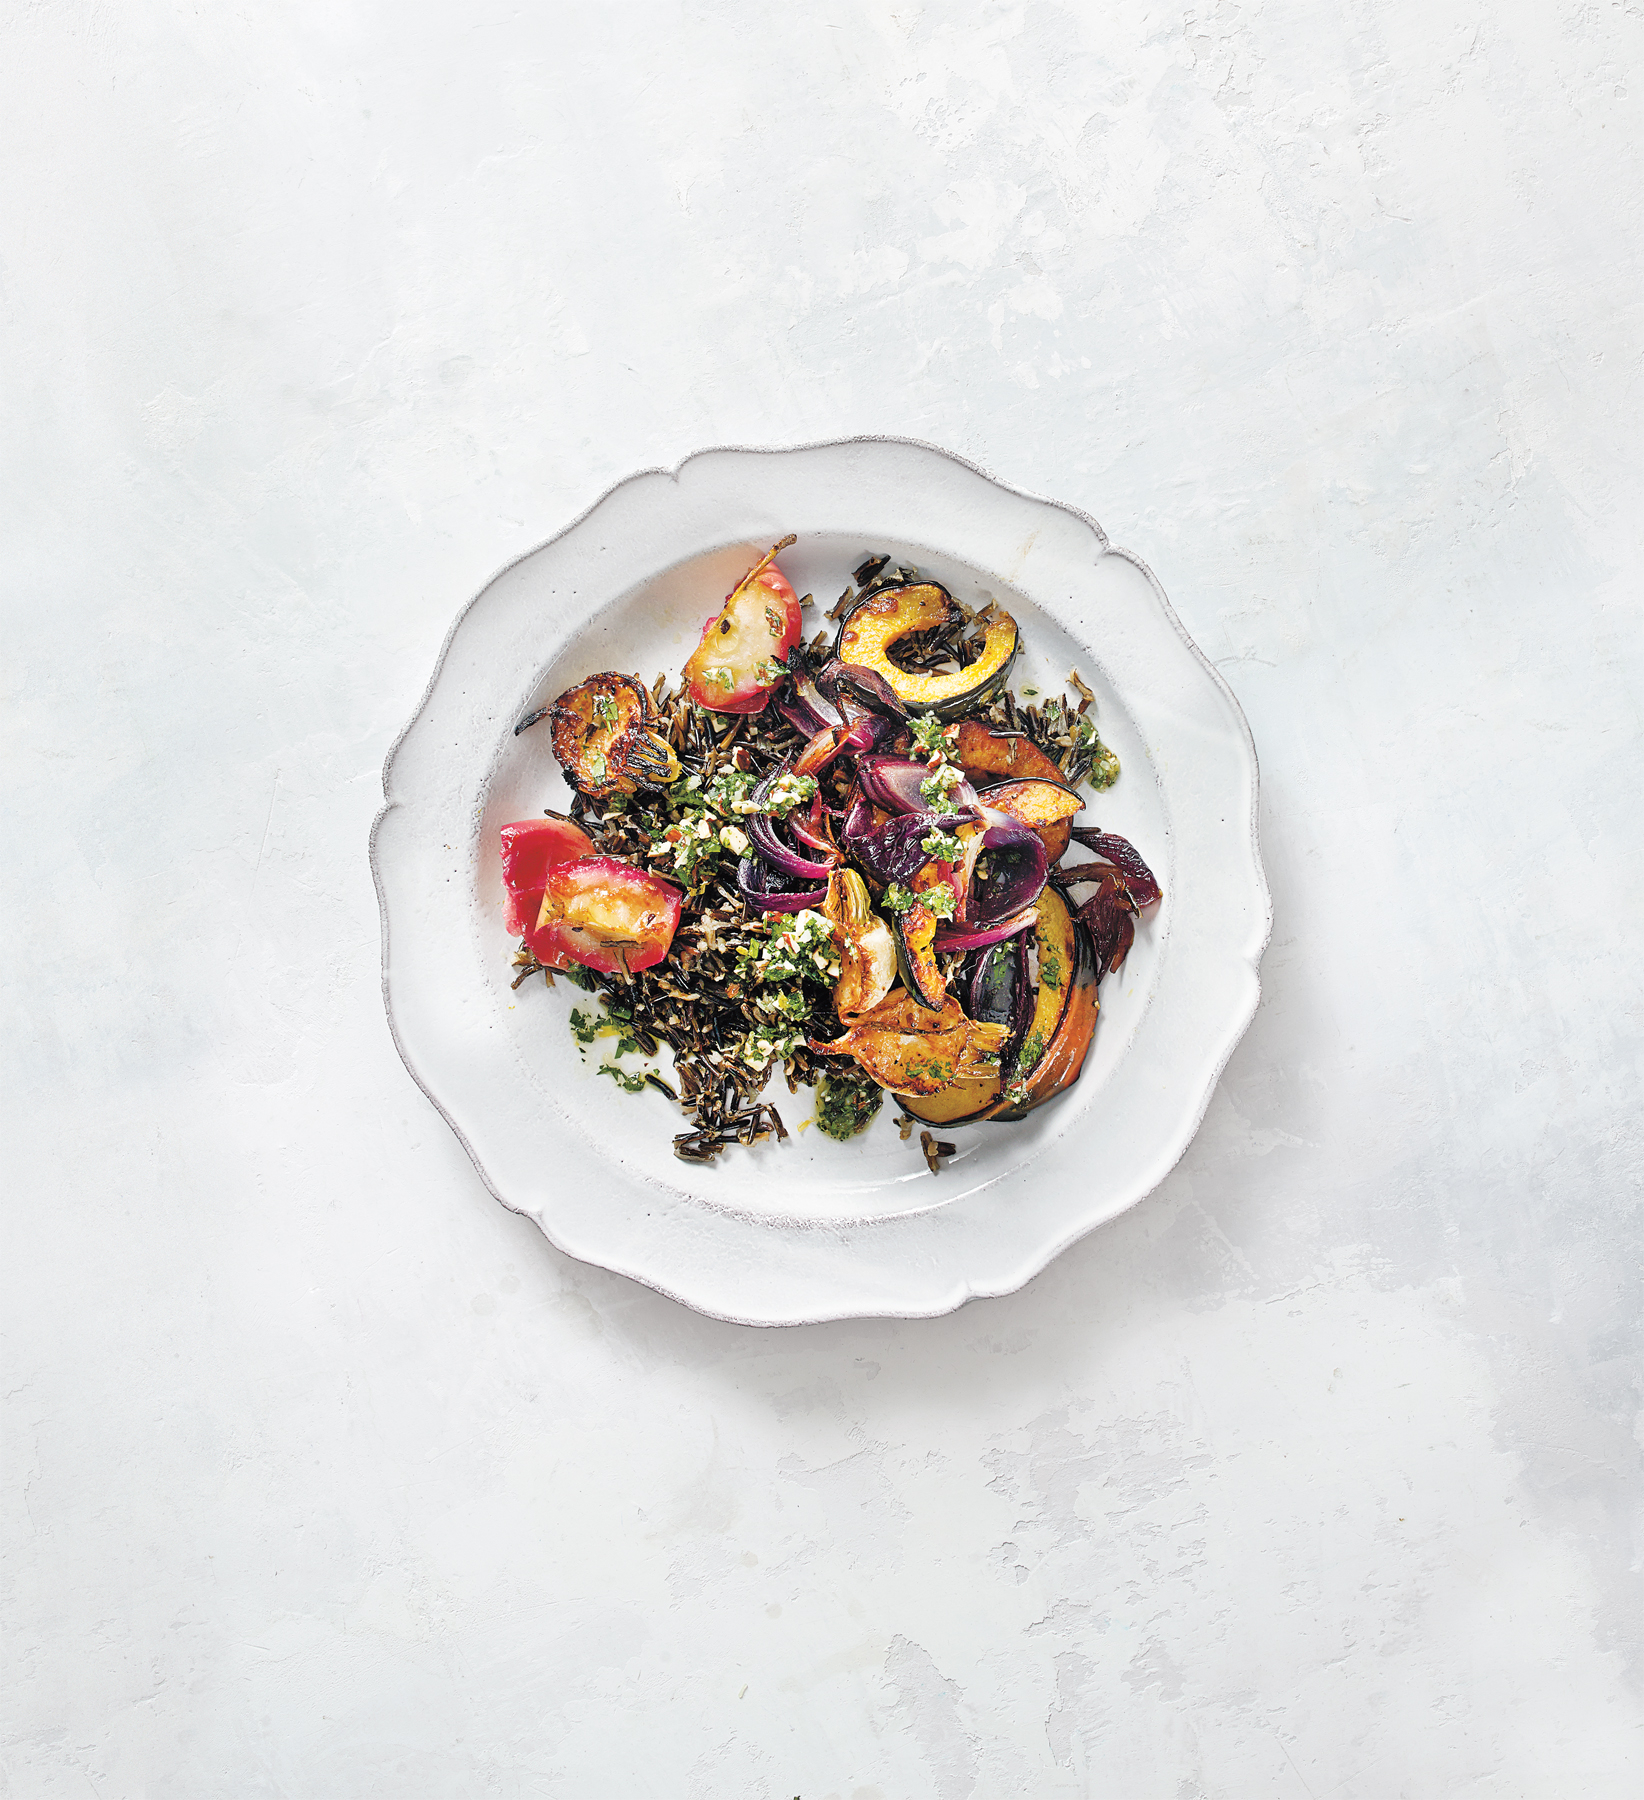 Roasted Vegetable and Wild Rice Salad with Almond-Parsley Sauce